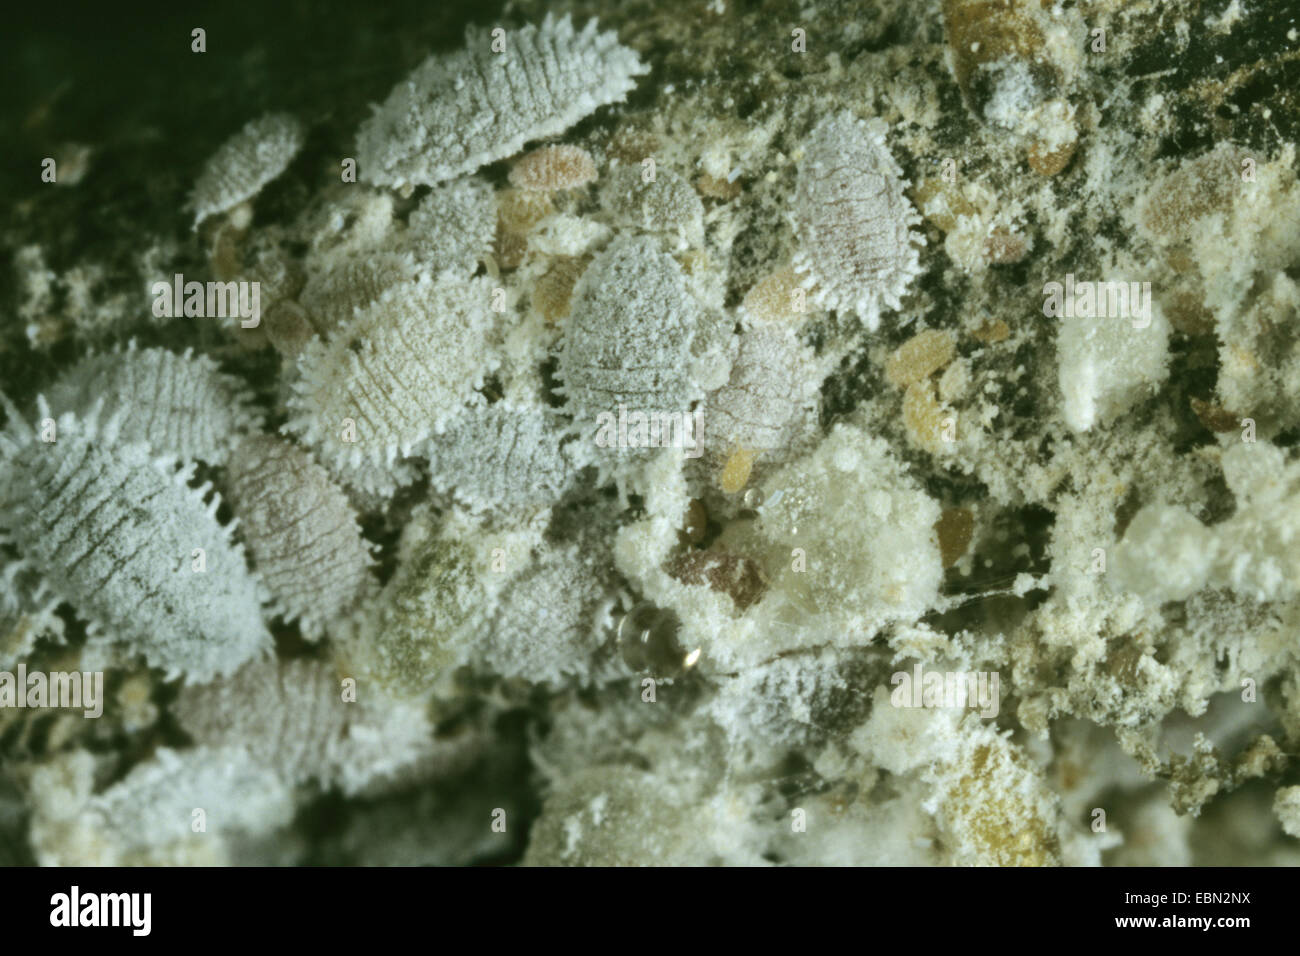 citrus mealybug, common mealybug, citrus scale (Planococcus citri), top view on a group of citrus mealybugs - Stock Image